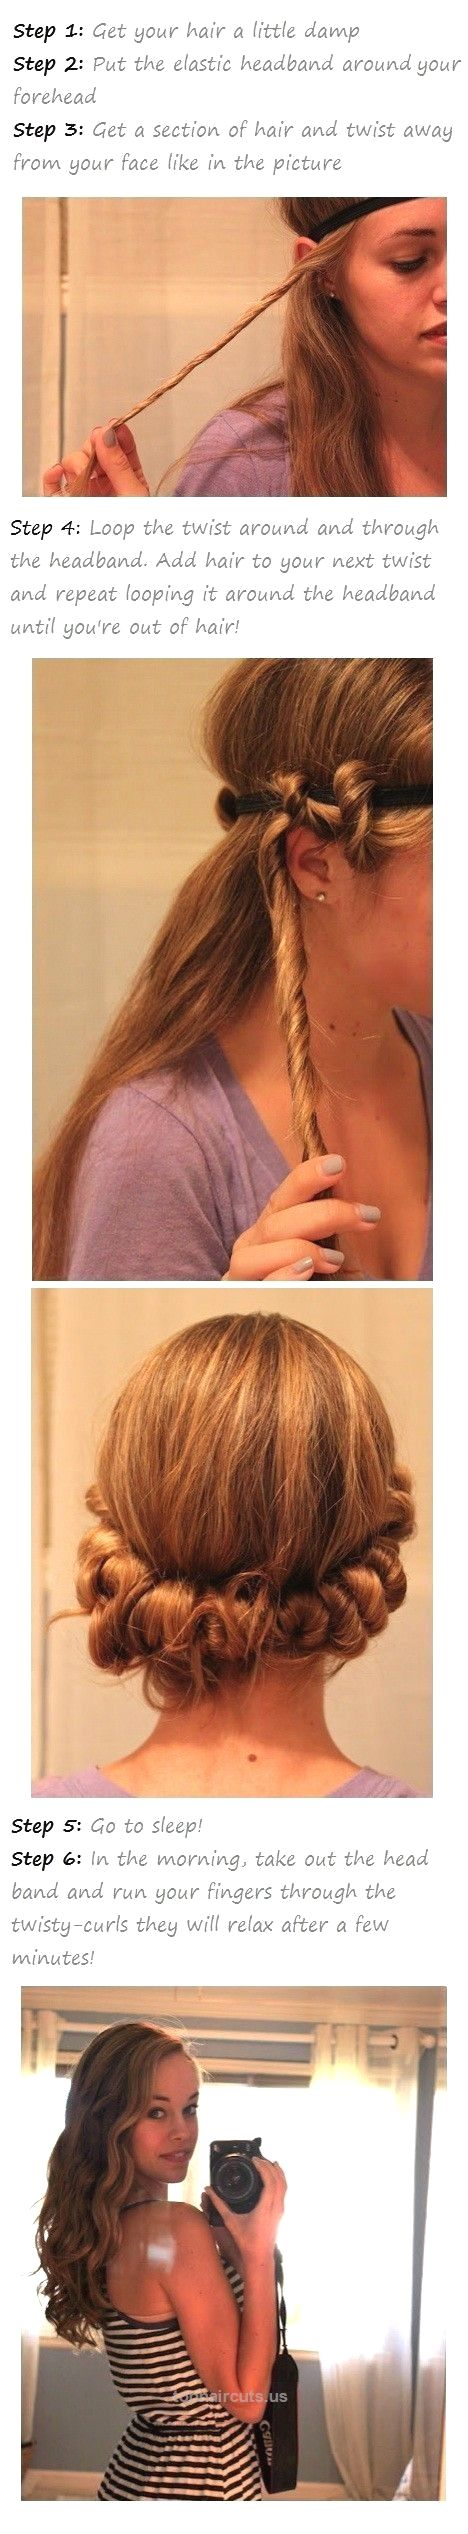 DIY No Heat Curls -15 Tutorials for Curl Hair without Heat  – Styles Weekly A photo guide to easy-to-do (especially on chaotic mornings!) back-to-school hairstyles for children.I can't wait until Beans has hair this long a ..  http://www.tophaircuts.us/2017/05/03/diy-no-heat-curls-15-tutorials-for-curl-hair-without-heat-styles-weekly/